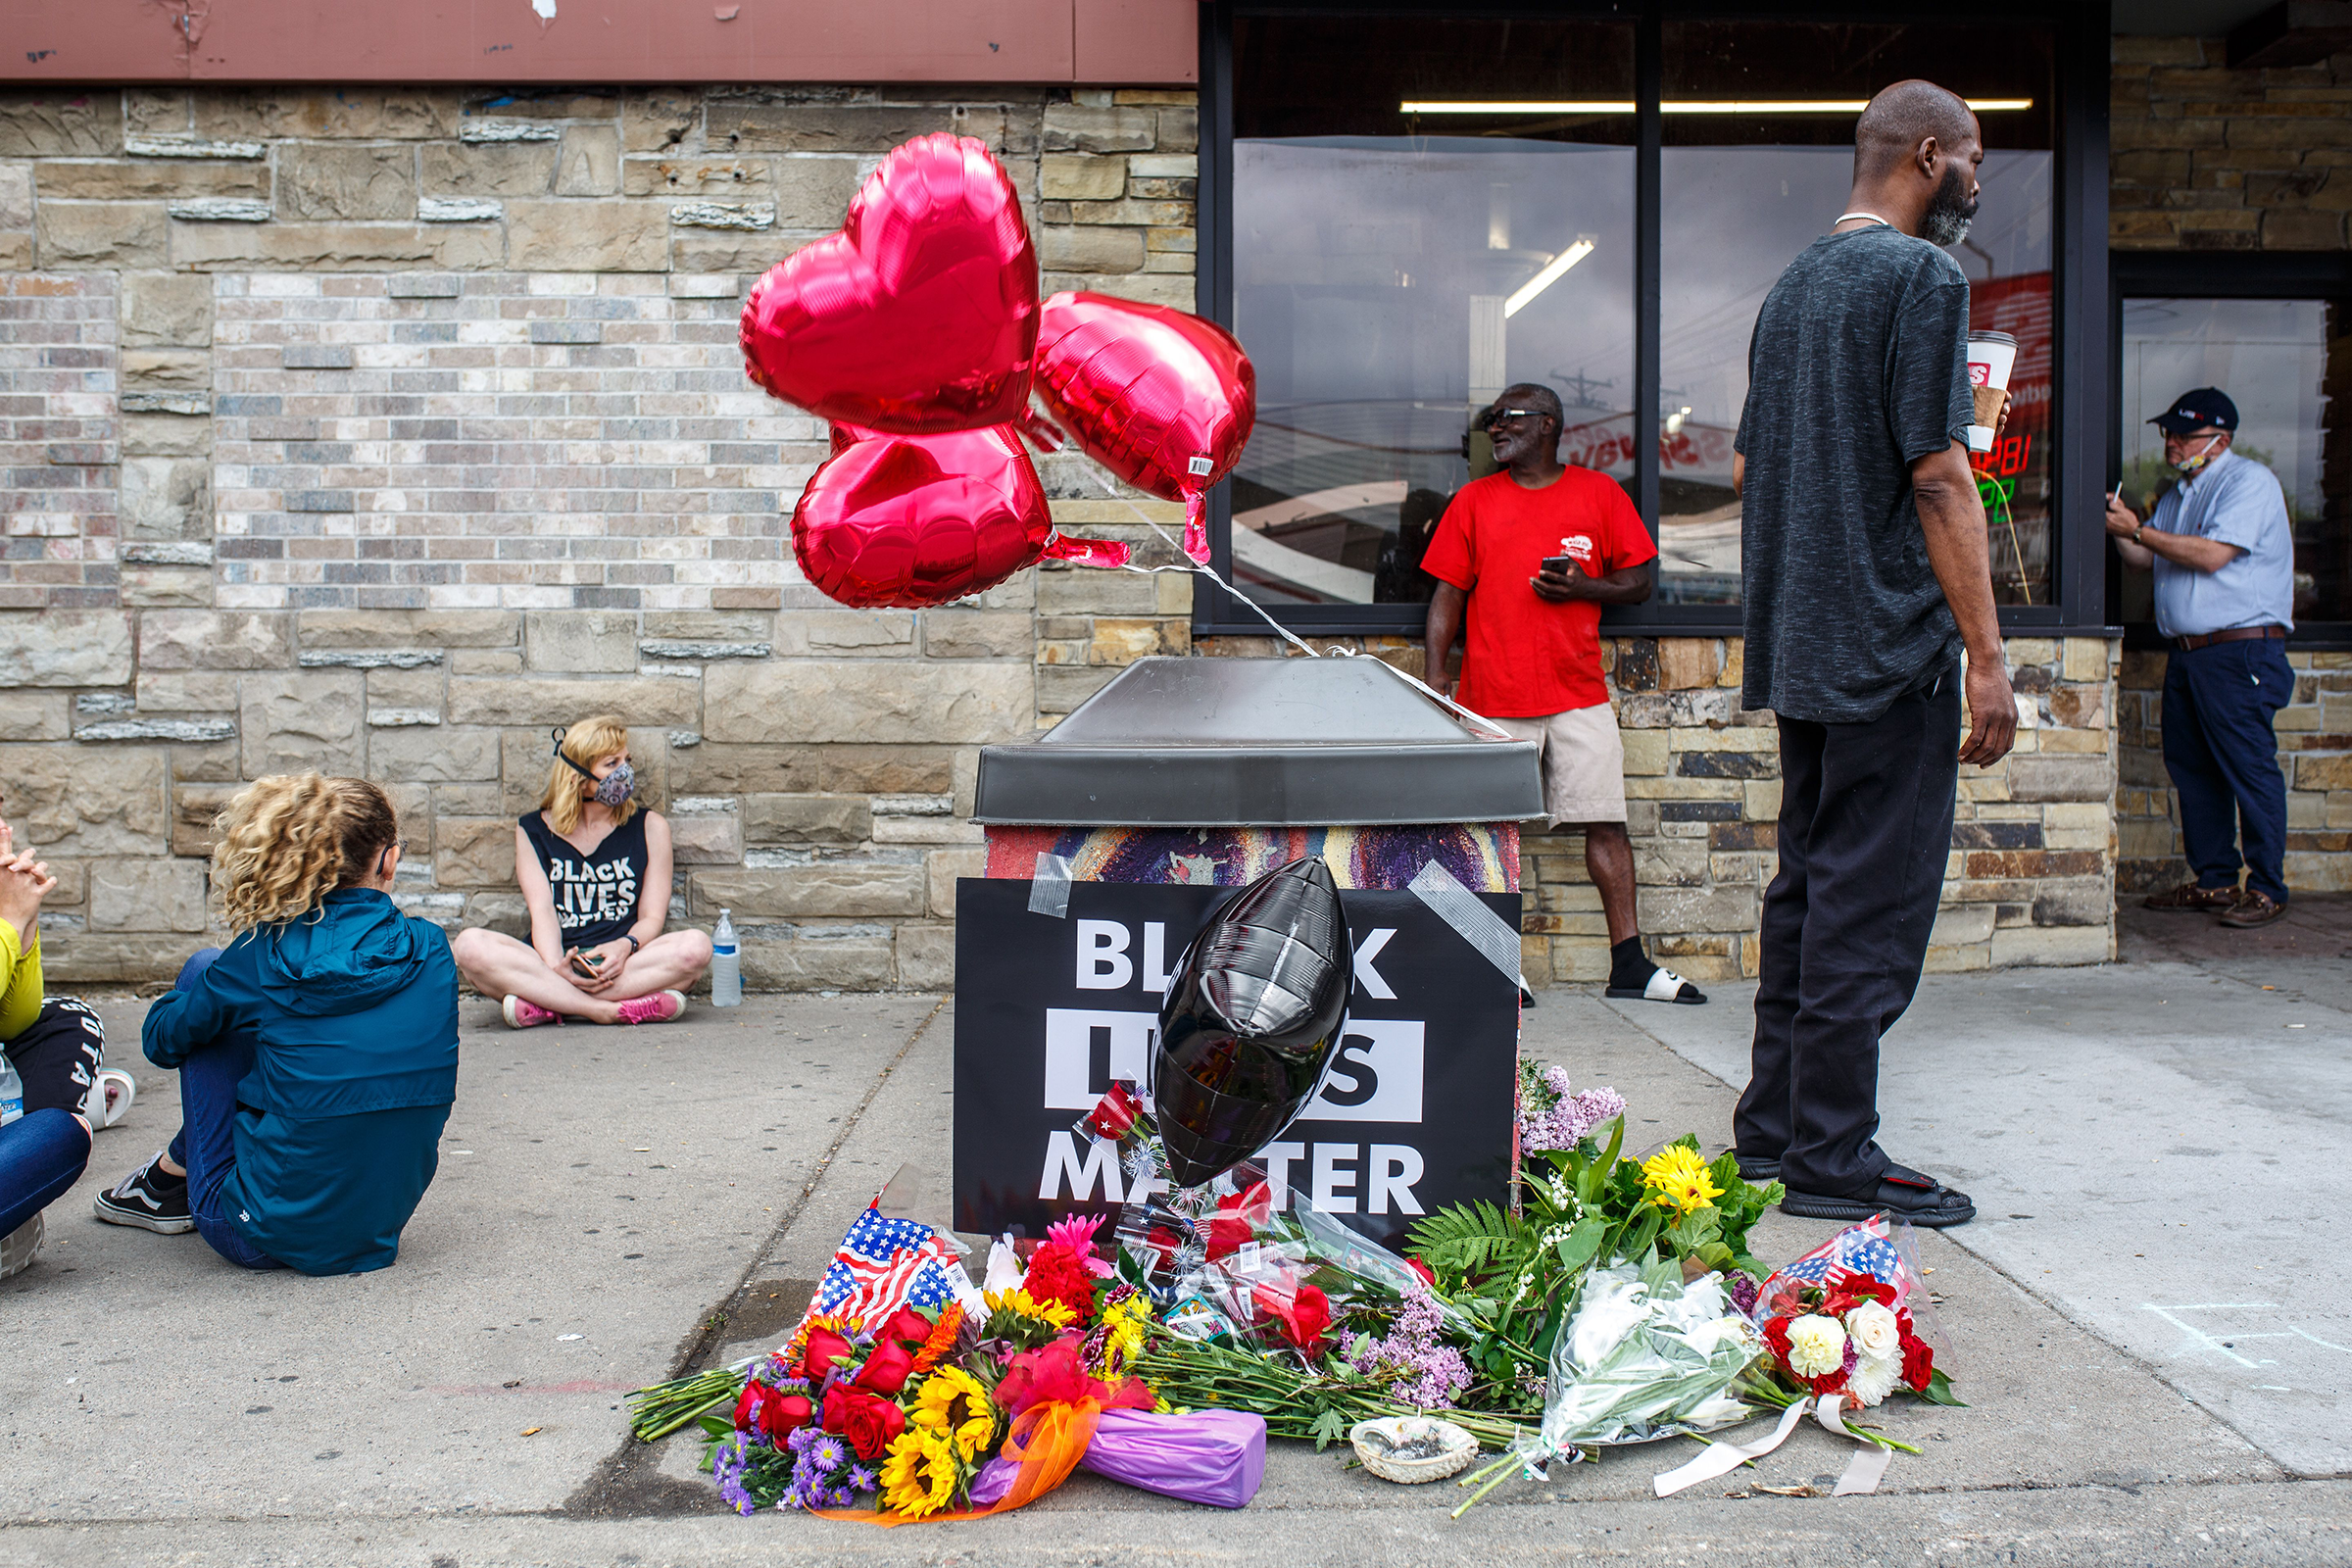 A memorial left for George Floyd, at the scene where an officer pinned him down a day earlier, in Minneapolis on May 26.